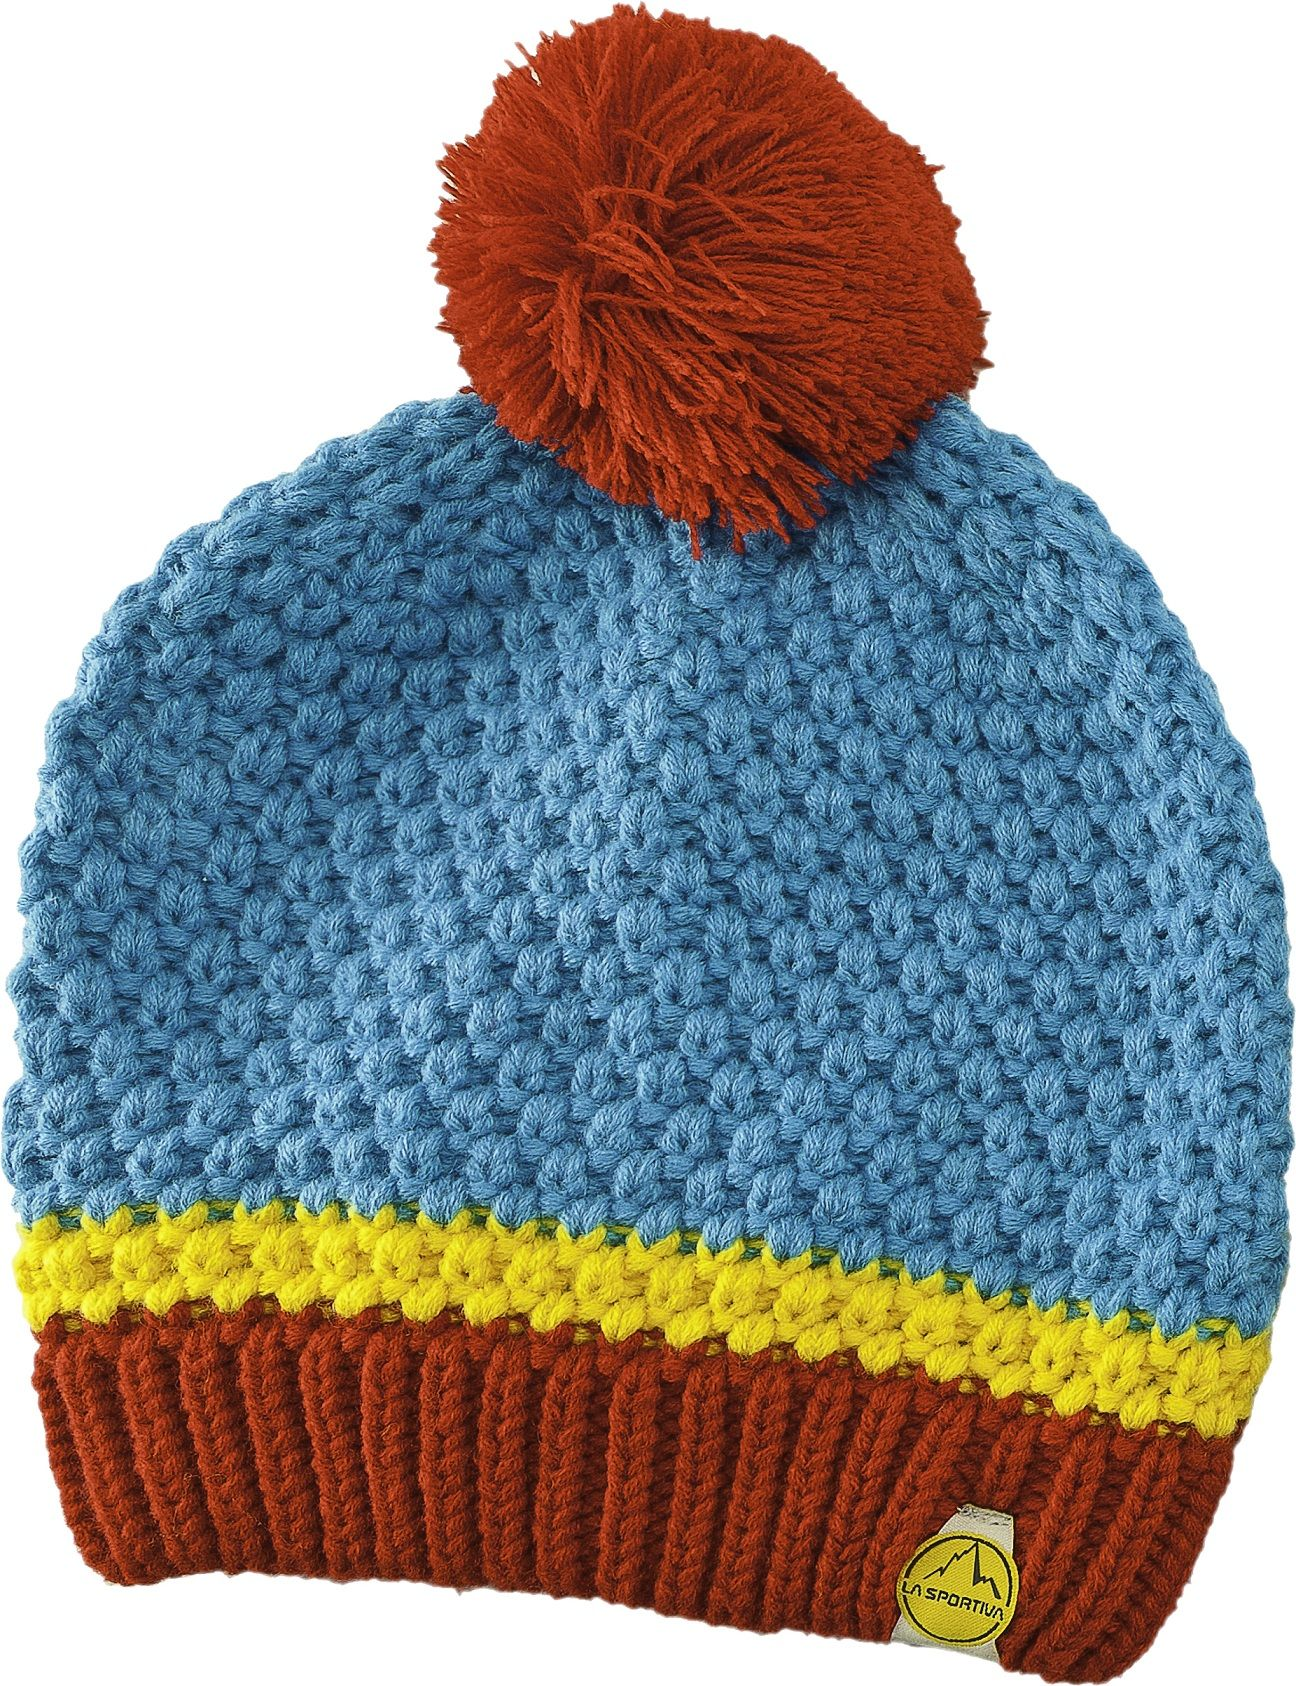 -- Muse Beanie -- Rough knitted hat with soft inner fleece lining. Excellent insulation on cold winter days. Thanks to the knit structure it breathes well during the activity and dries fast when damp. Feminine knit pattern.